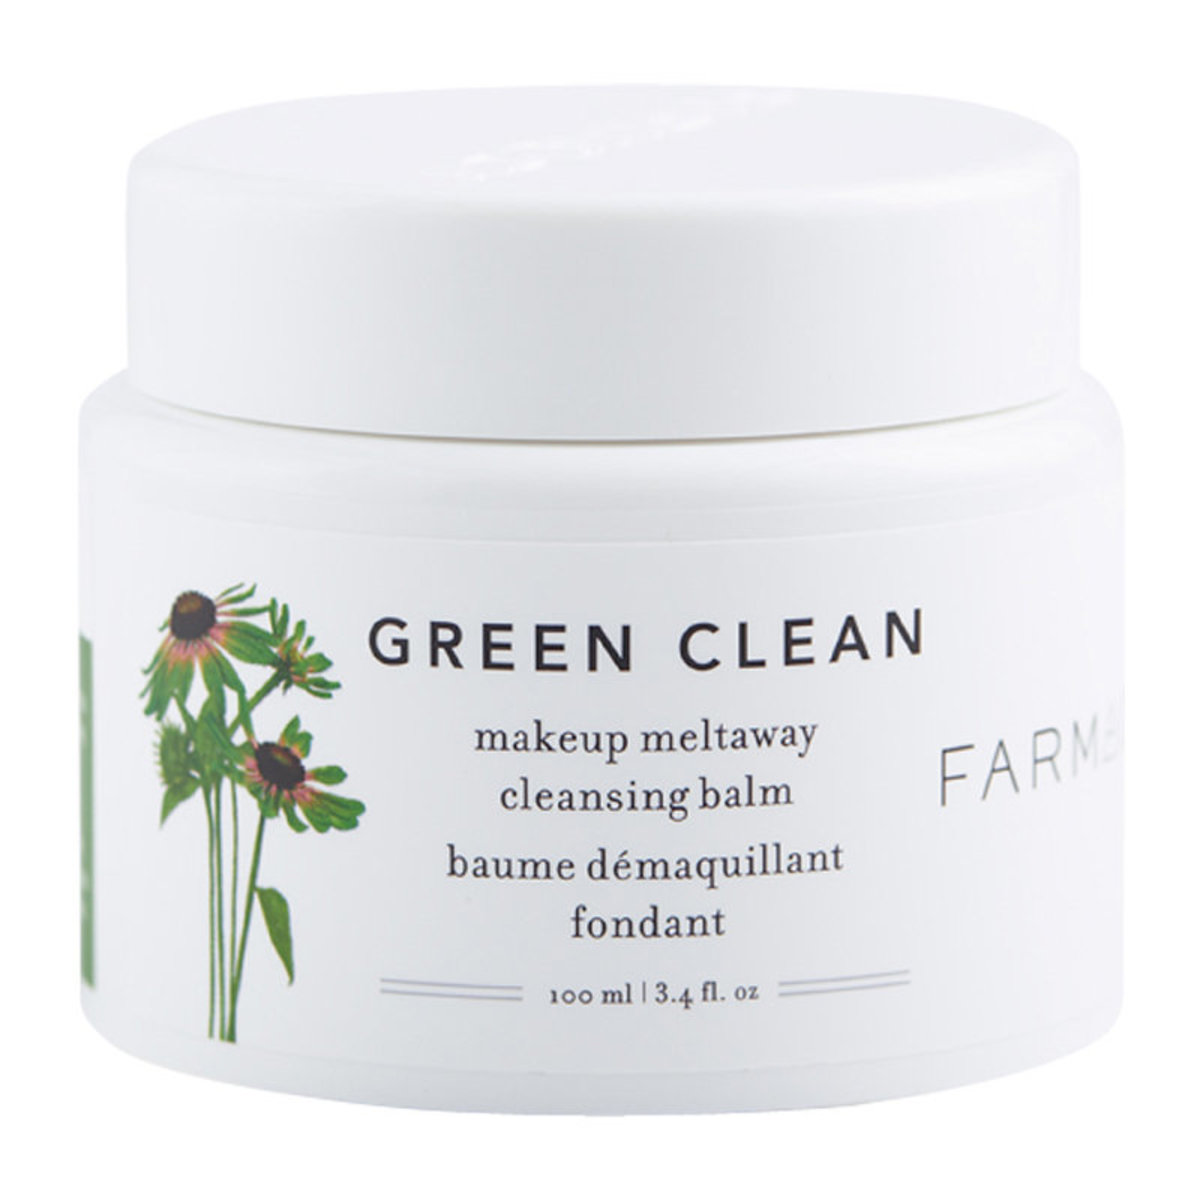 Green Clean Makeup Removing Cleansing Balm 100g-parallel import